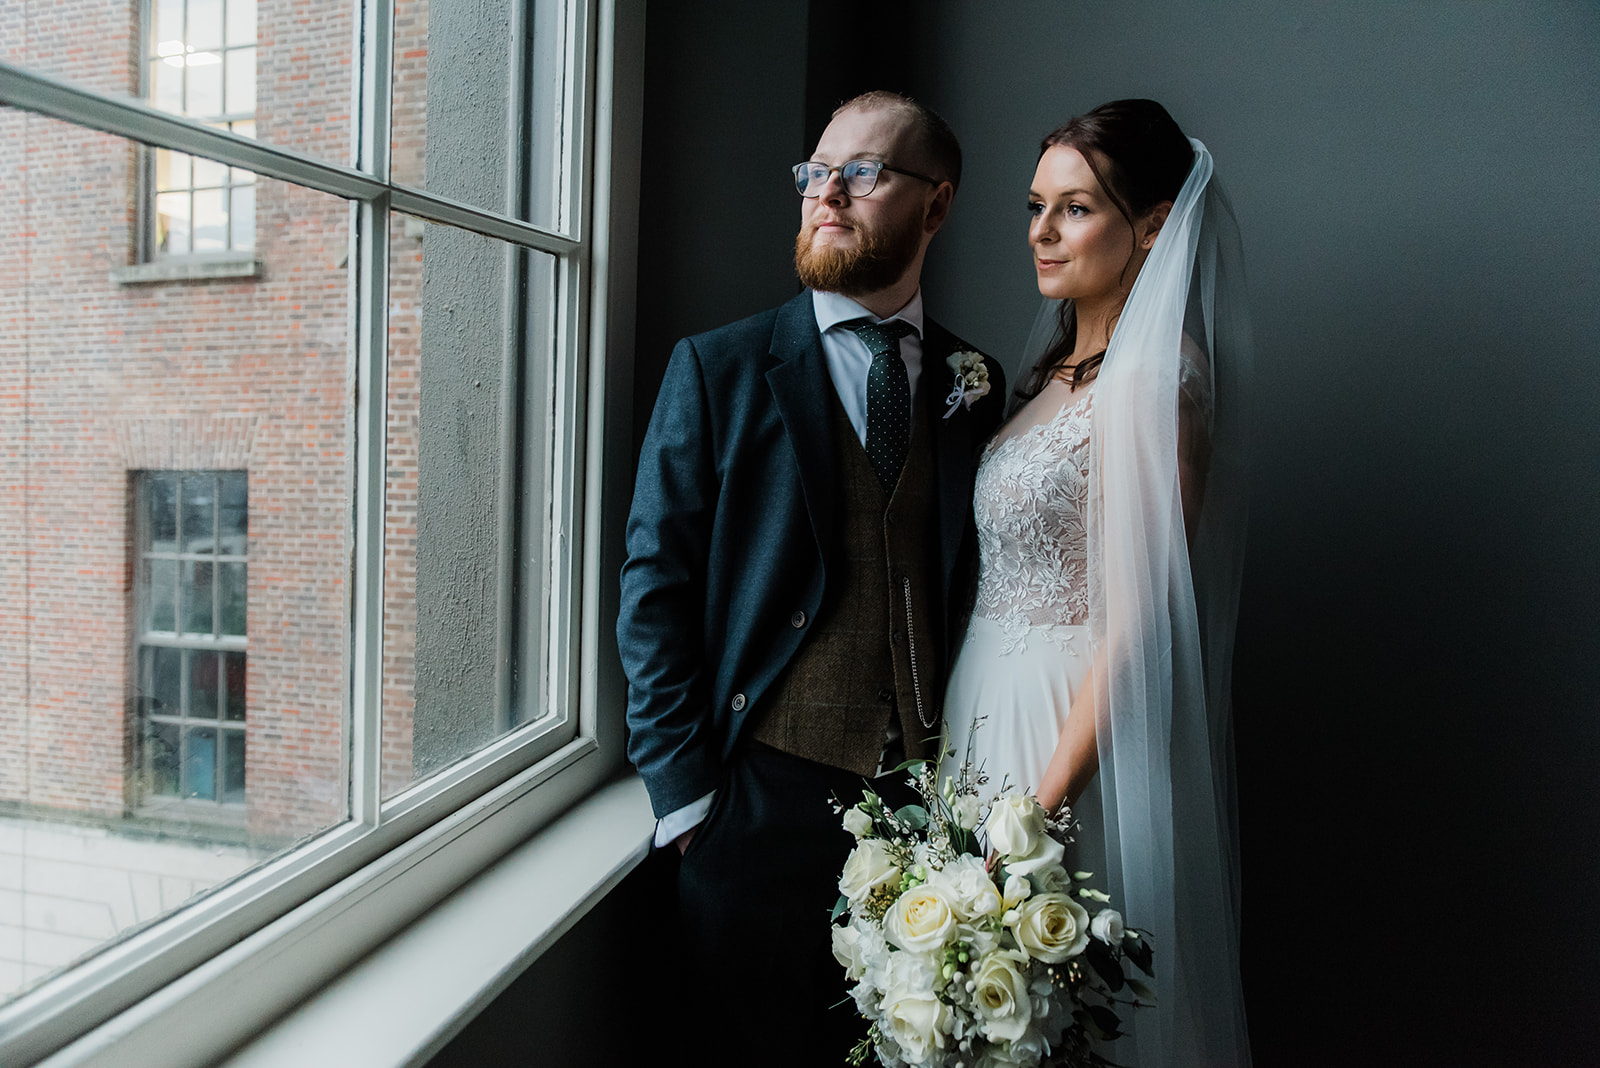 Bride and groom standing at window